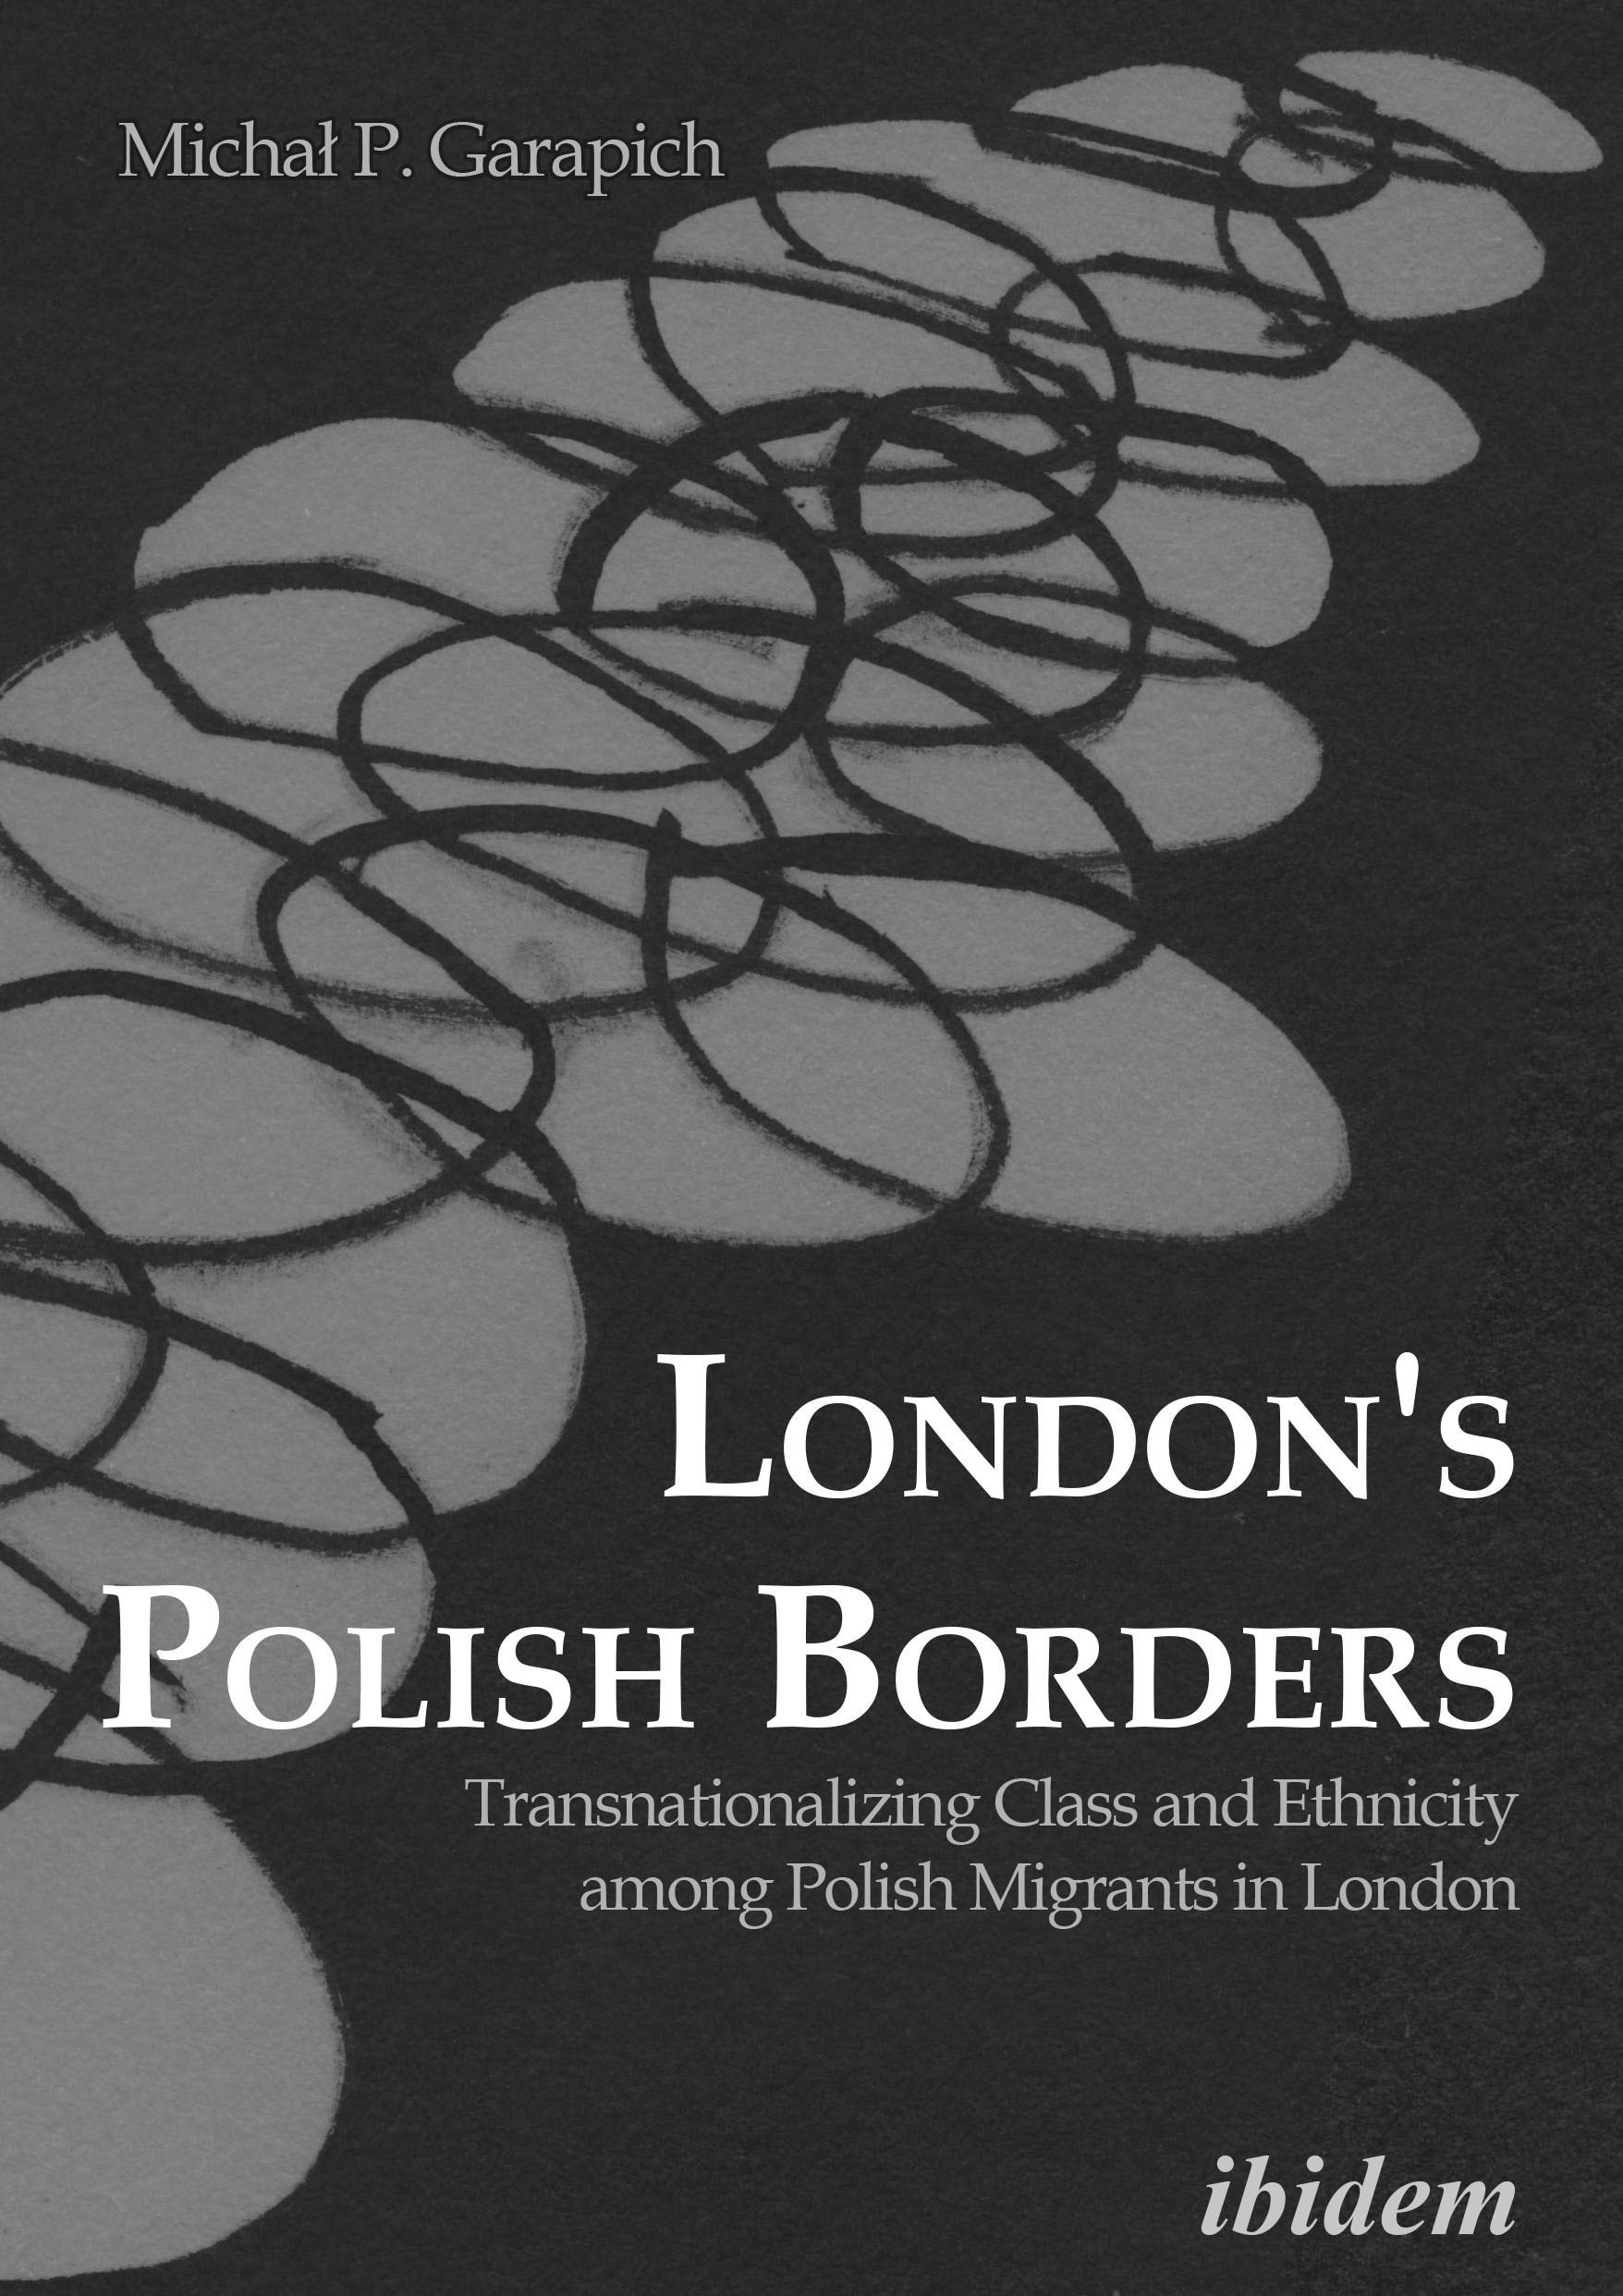 London's Polish Borders